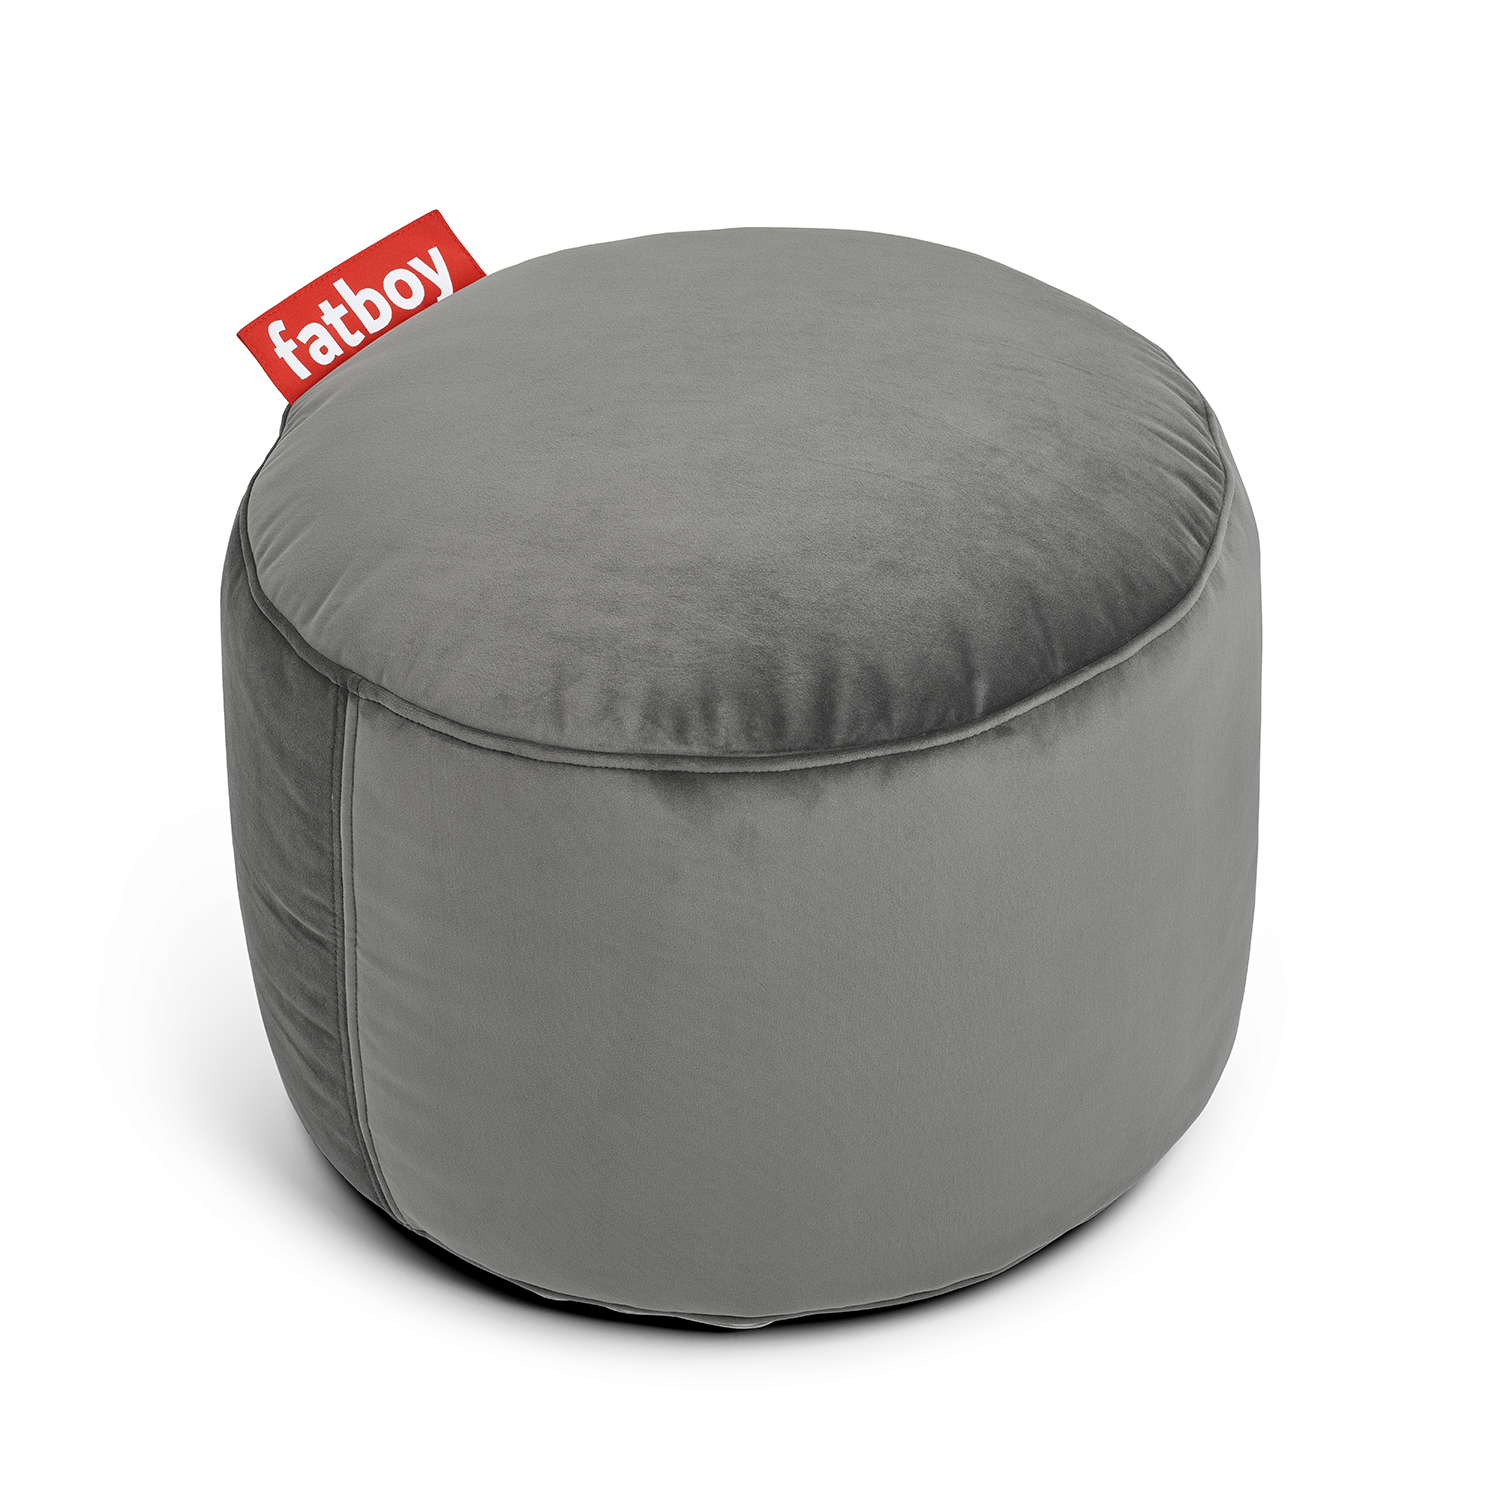 Fatboy-Point Velvet Puffe, Taupe